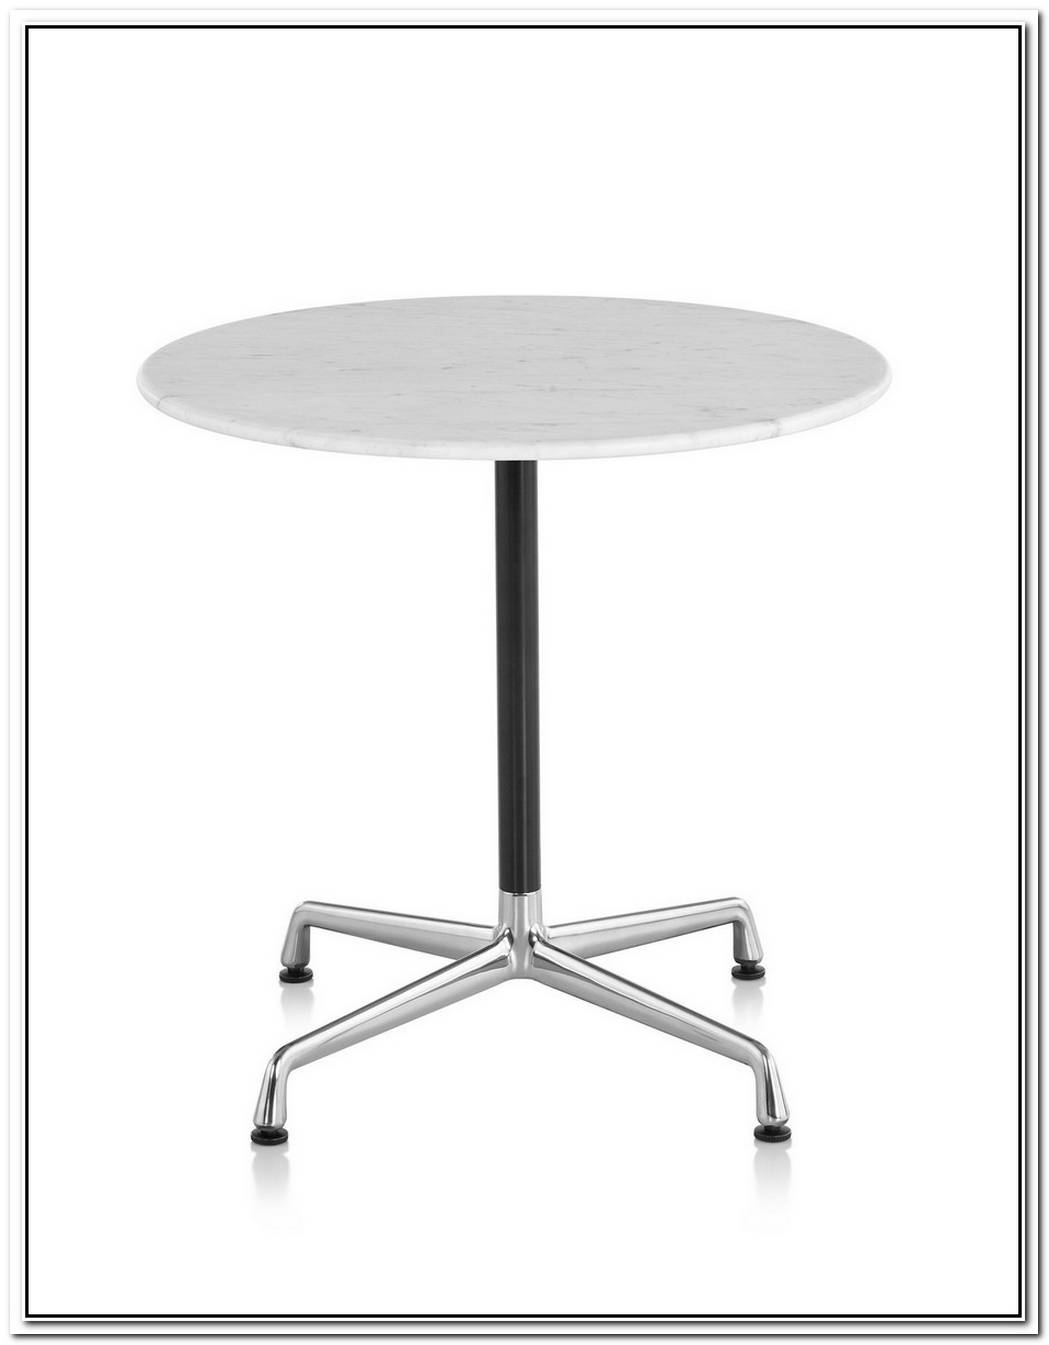 The Elegant Eames® Laminate Round Table